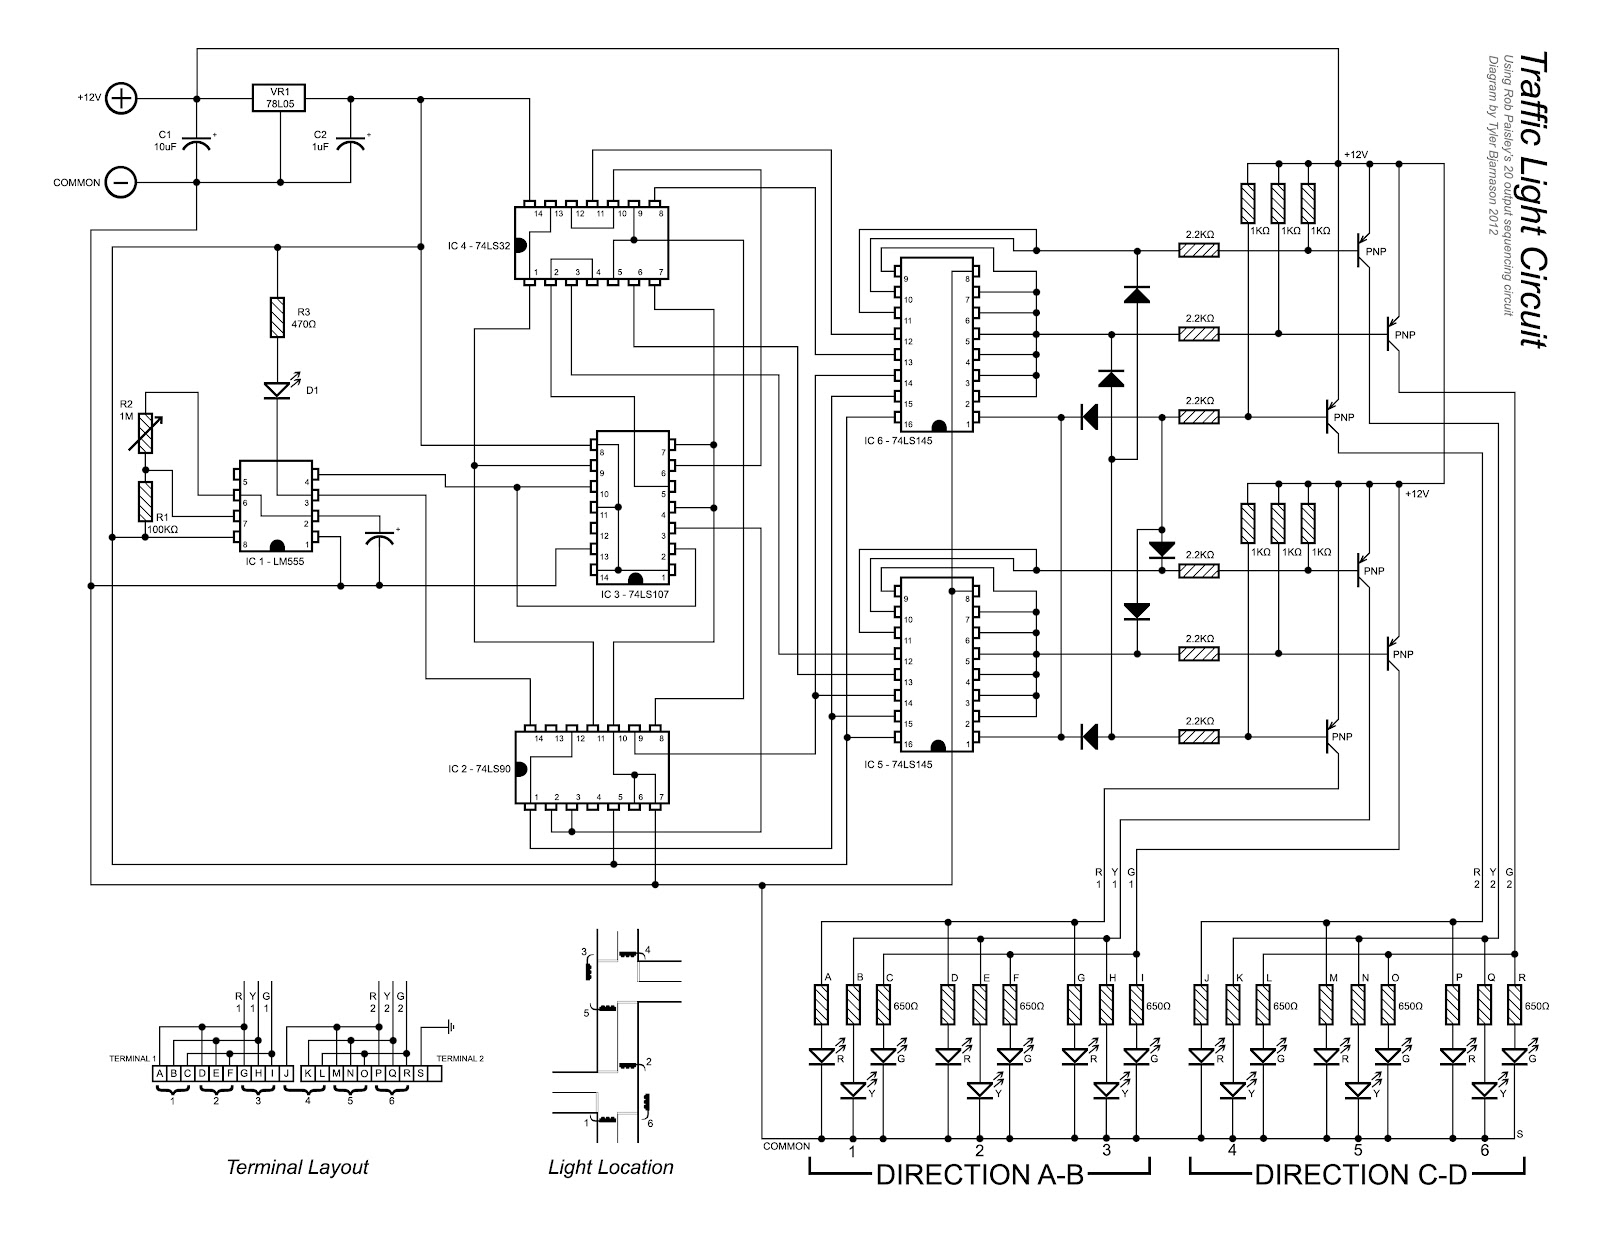 hight resolution of ty s model railroad wiring diagrams led light controller wiring diagram light controller wiring diagram